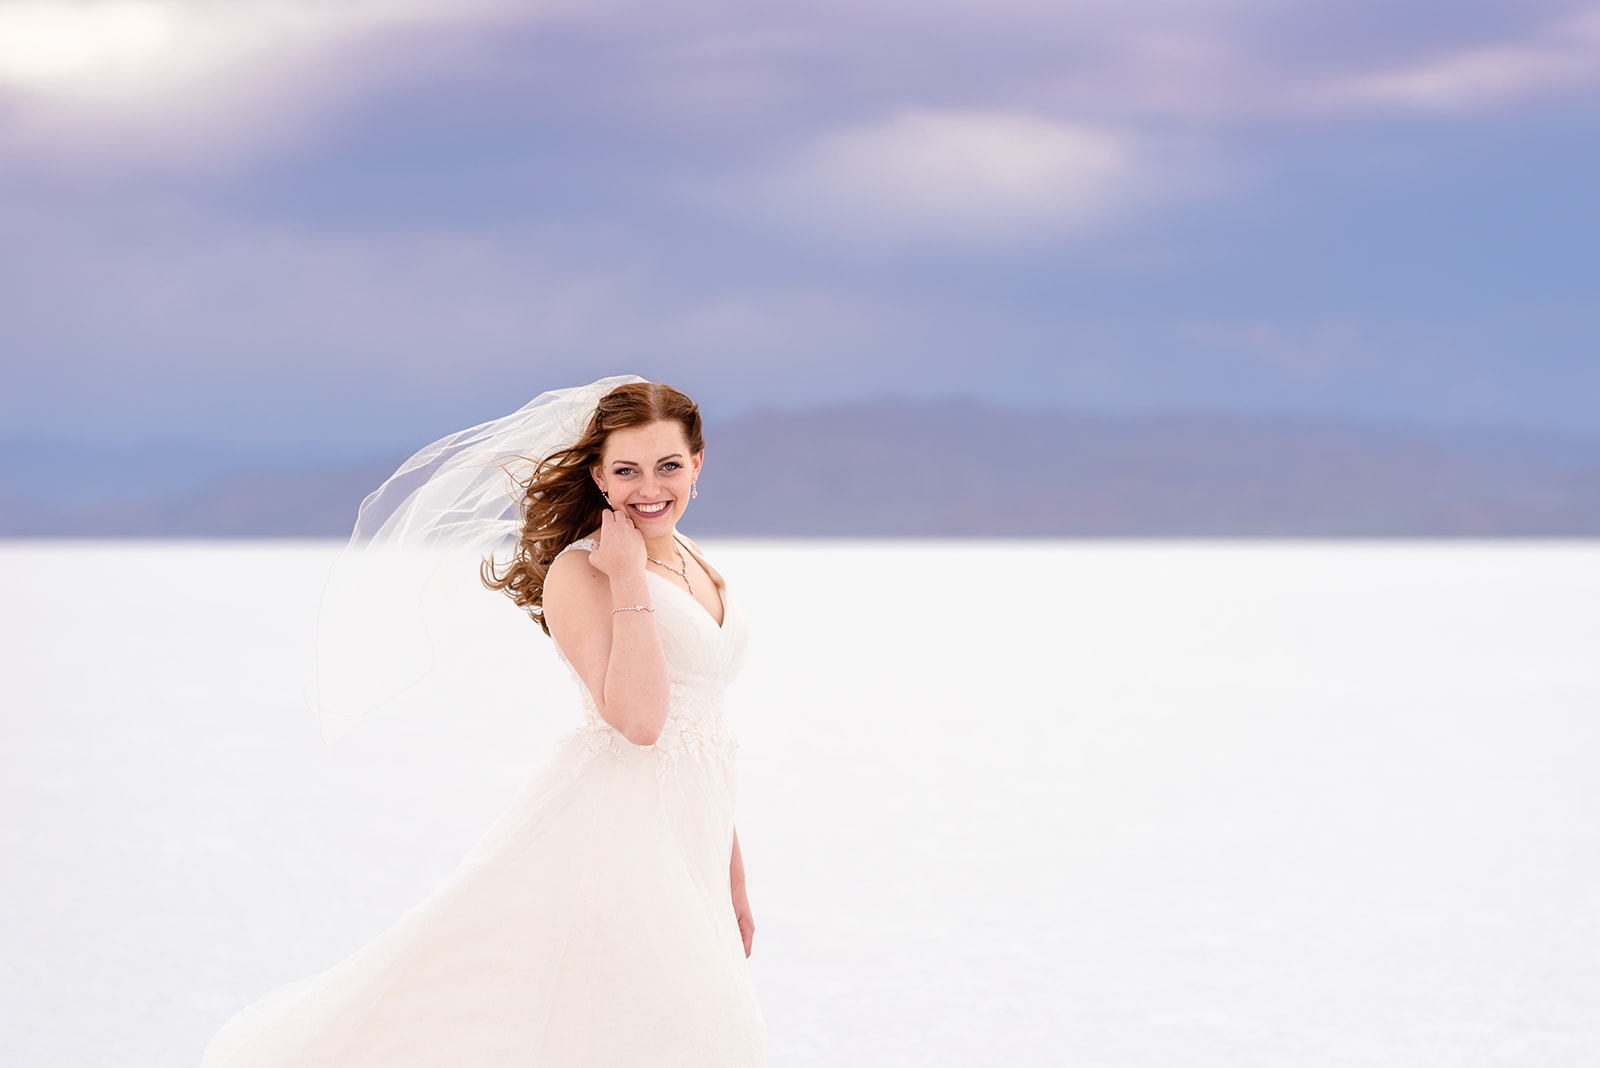 Smiling bridal portrait of Adri at the Bonneville Salt Falts in Utah. Embrace the wind! Taken by Coley Cook Photography.